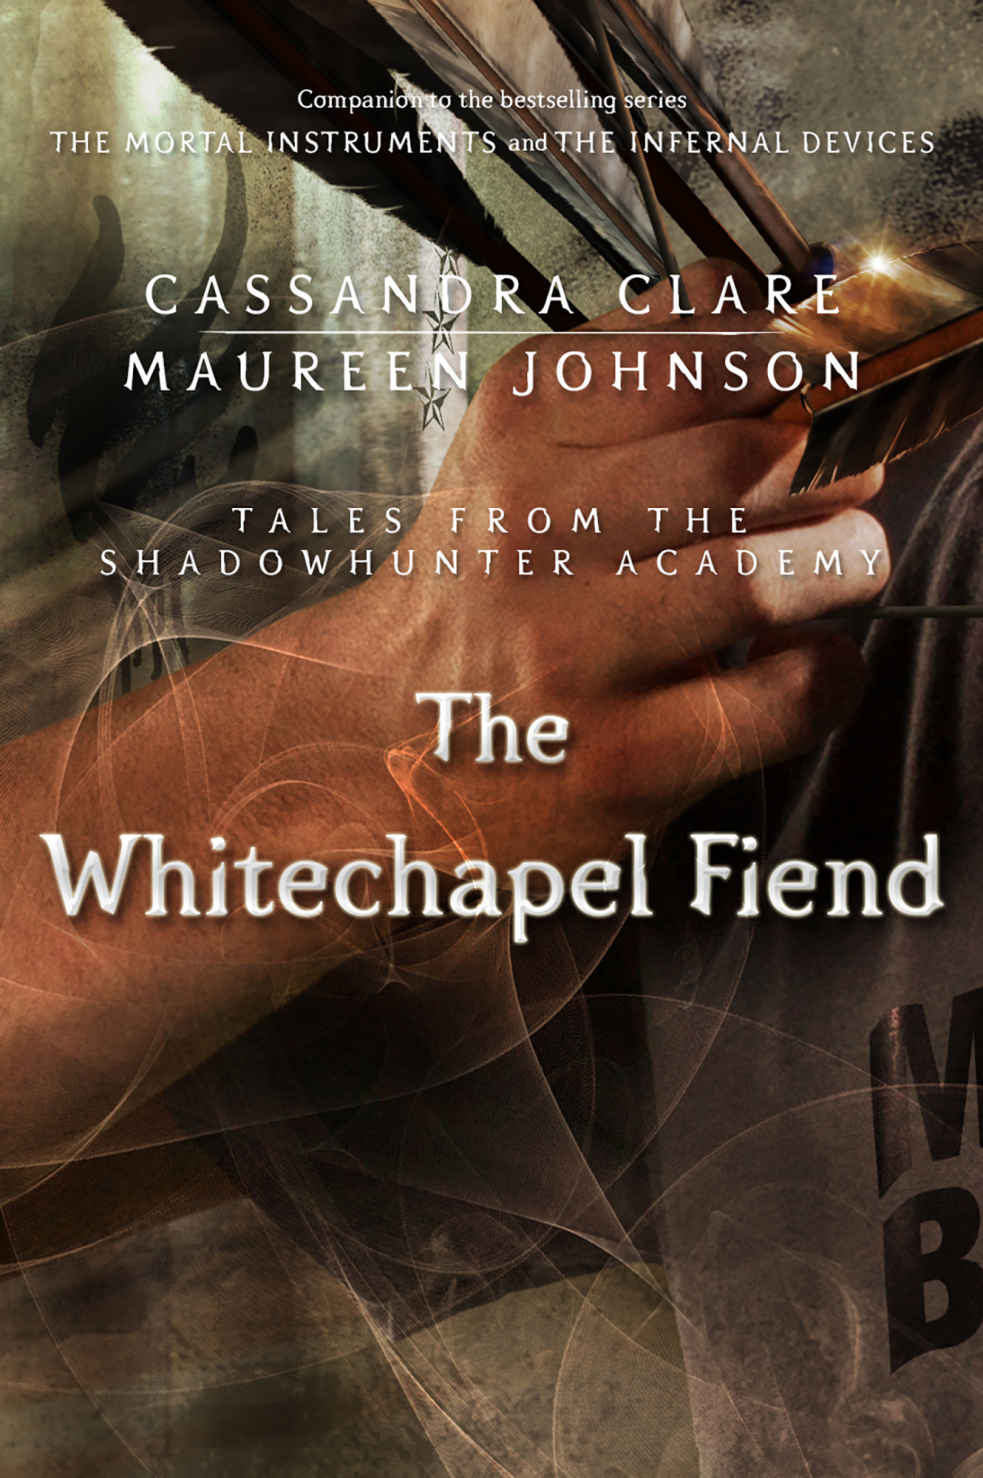 Image result for the whitechapel fiend book